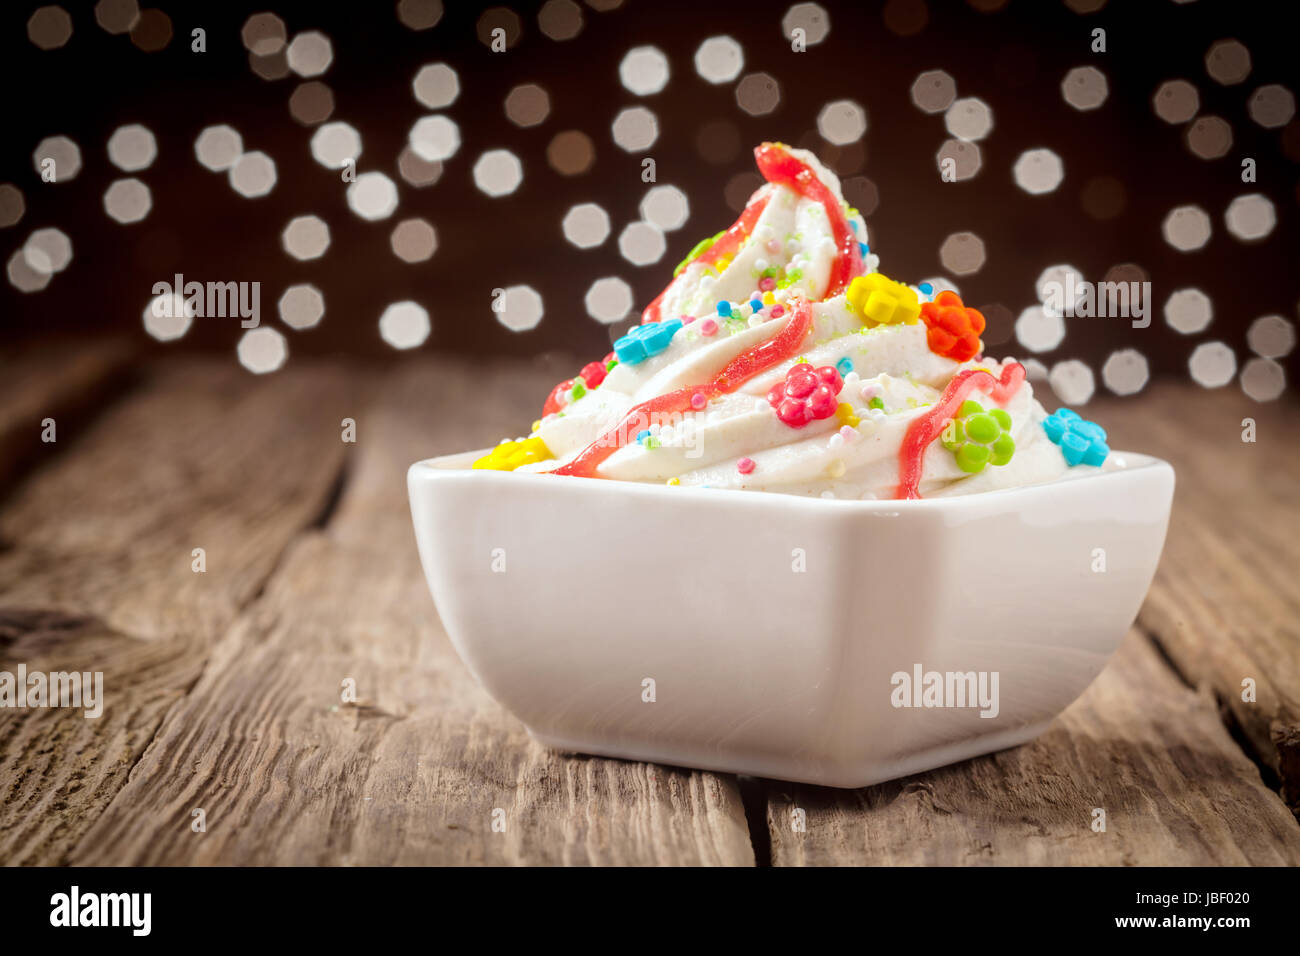 Colorful kids ice cream party dessert with a twirl of rich creamy vanilla ice cream topped with vibrant candy and Stock Photo